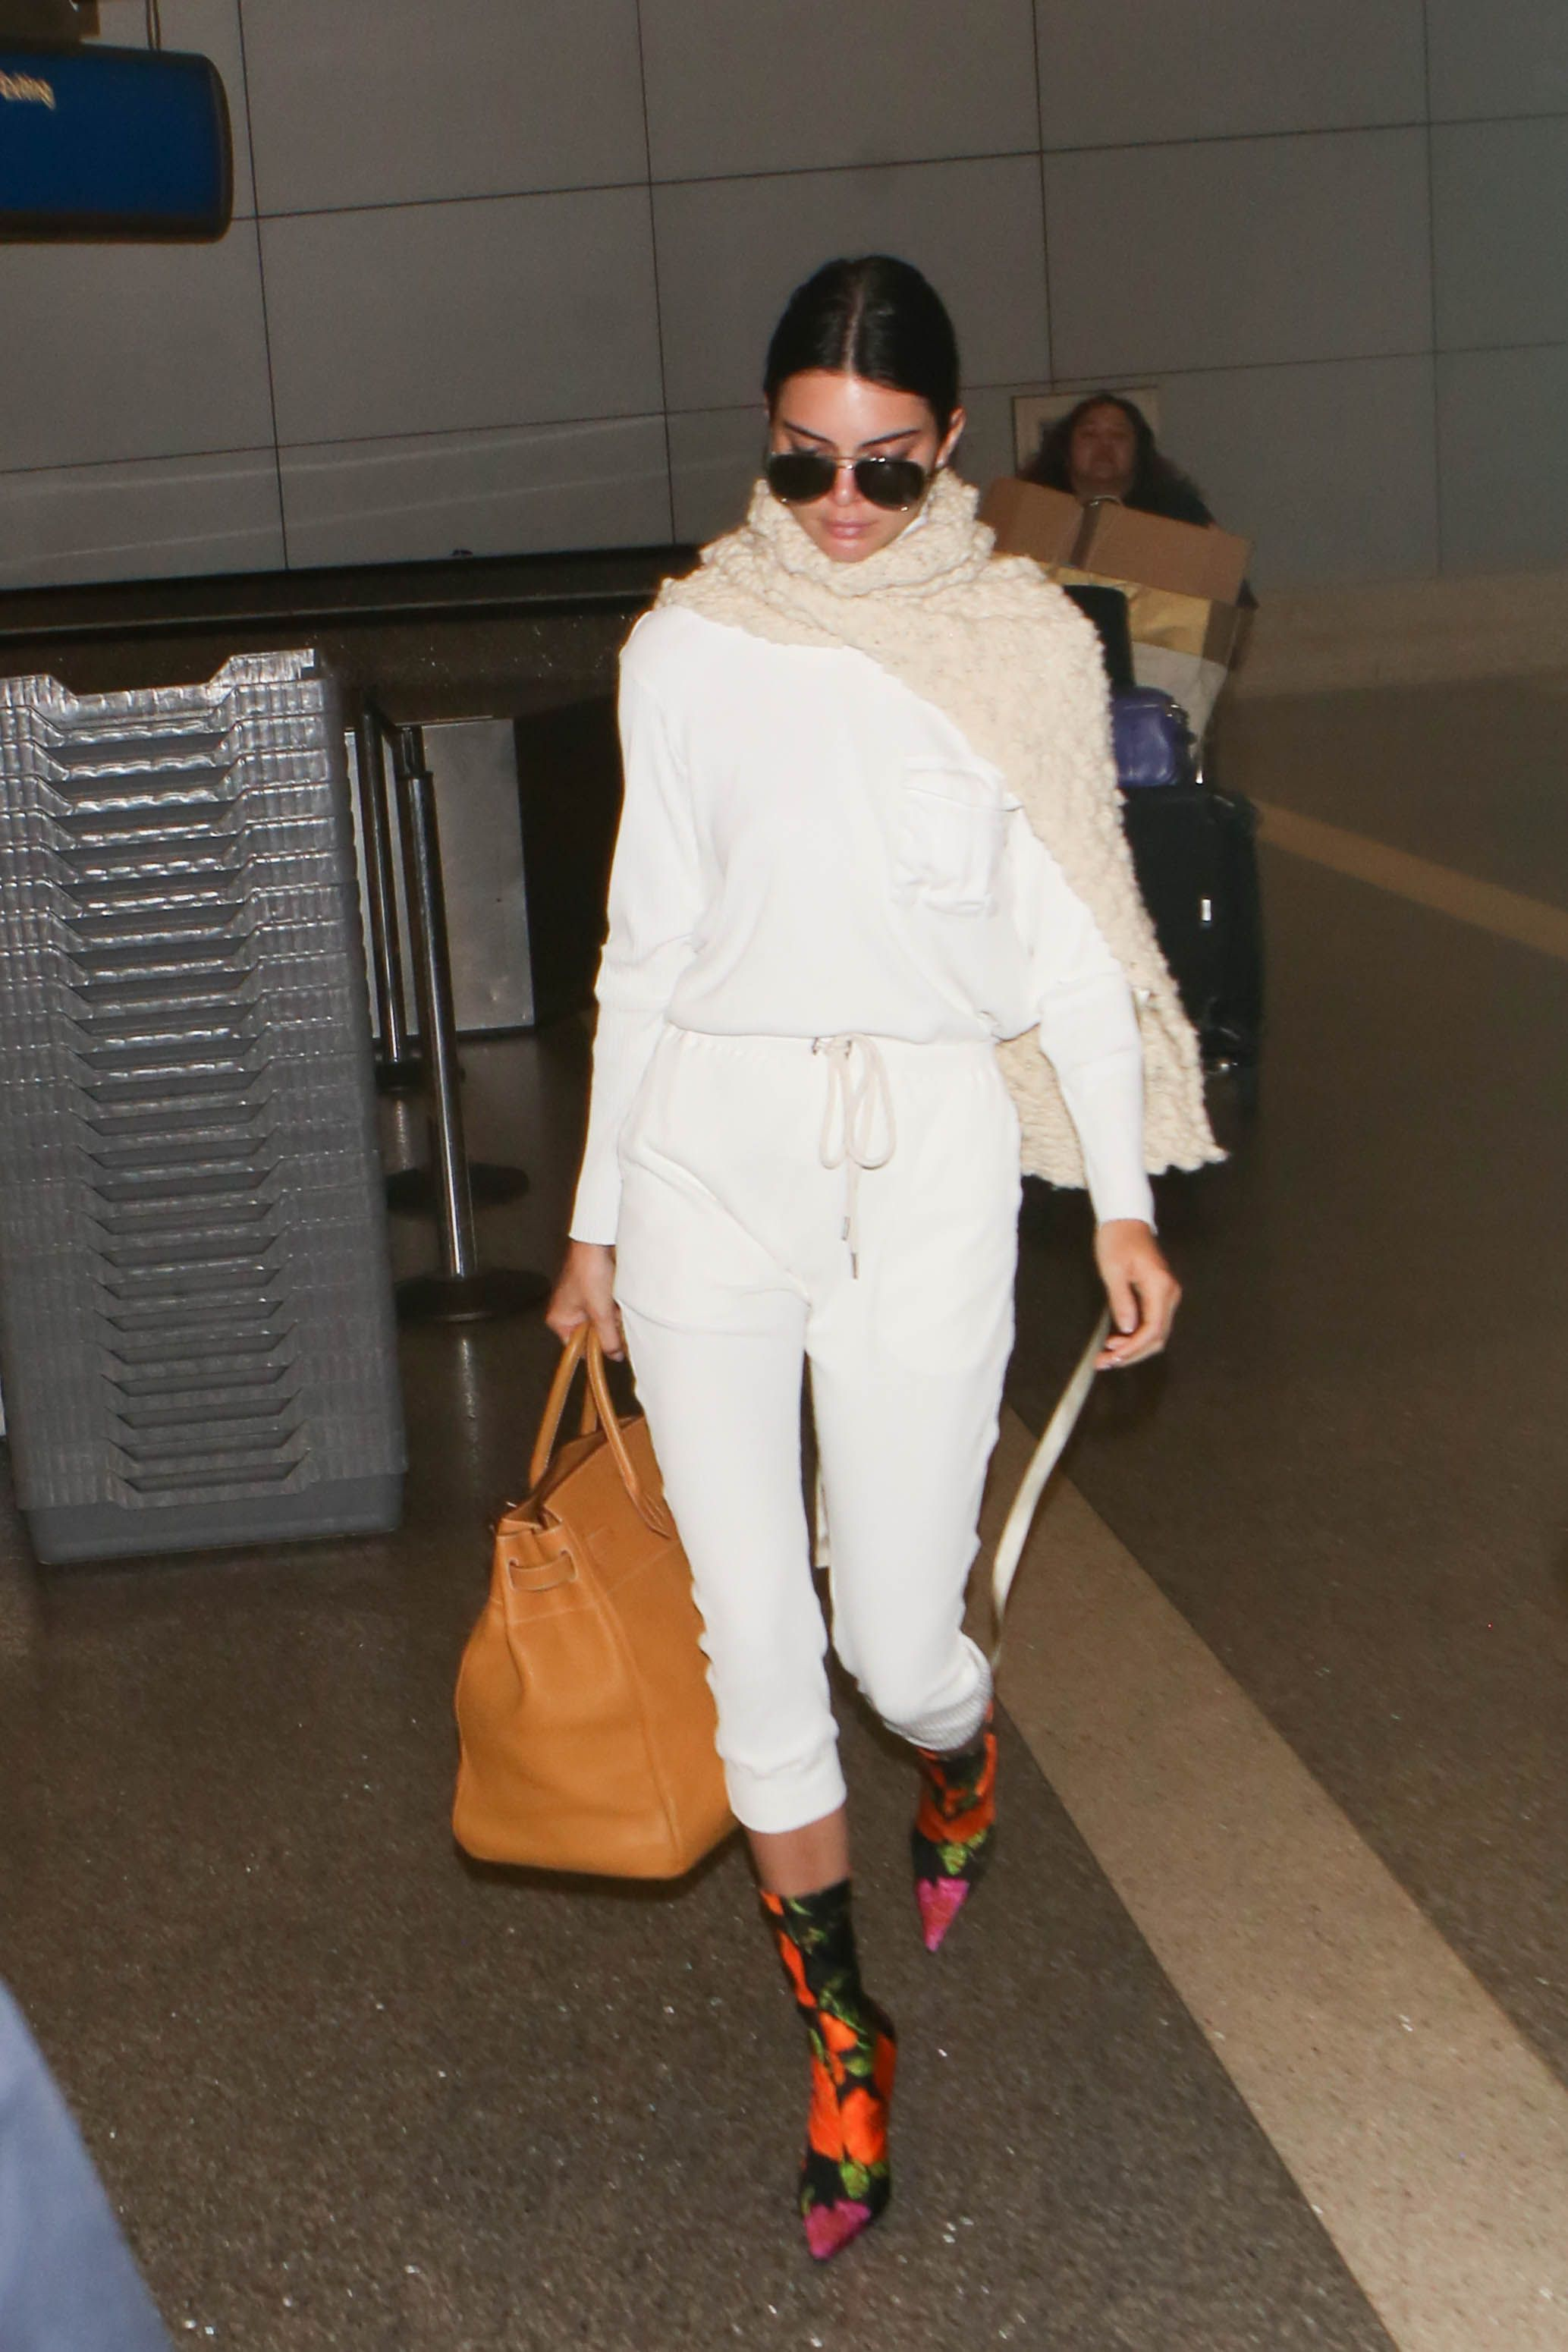 007707a1f0f3 Kendall Jenner Style - Kendall Jenner s Best Outfits